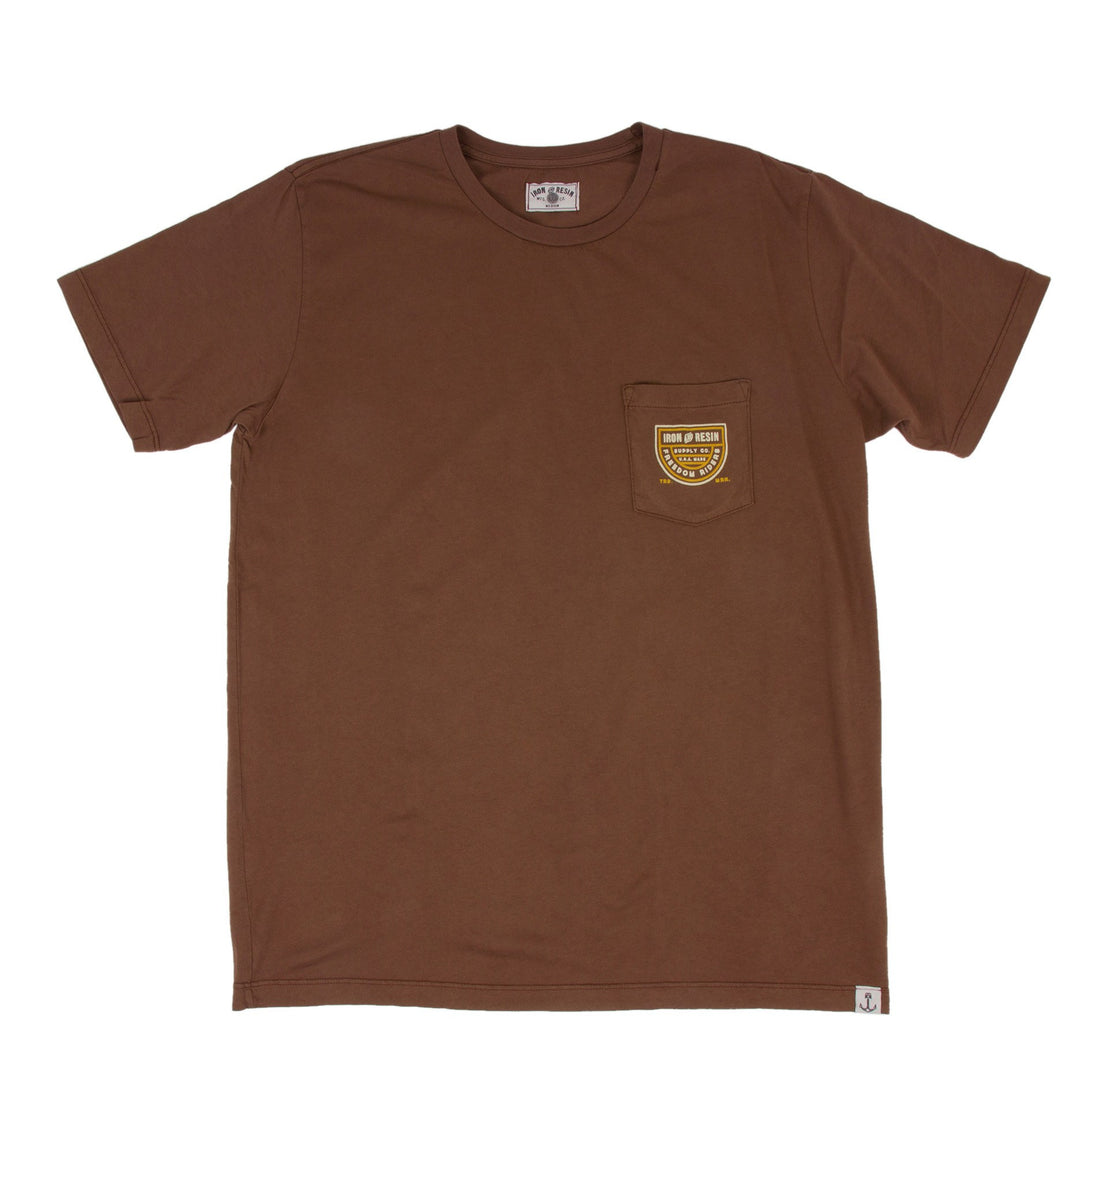 Richman Tee - Tops - Iron and Resin